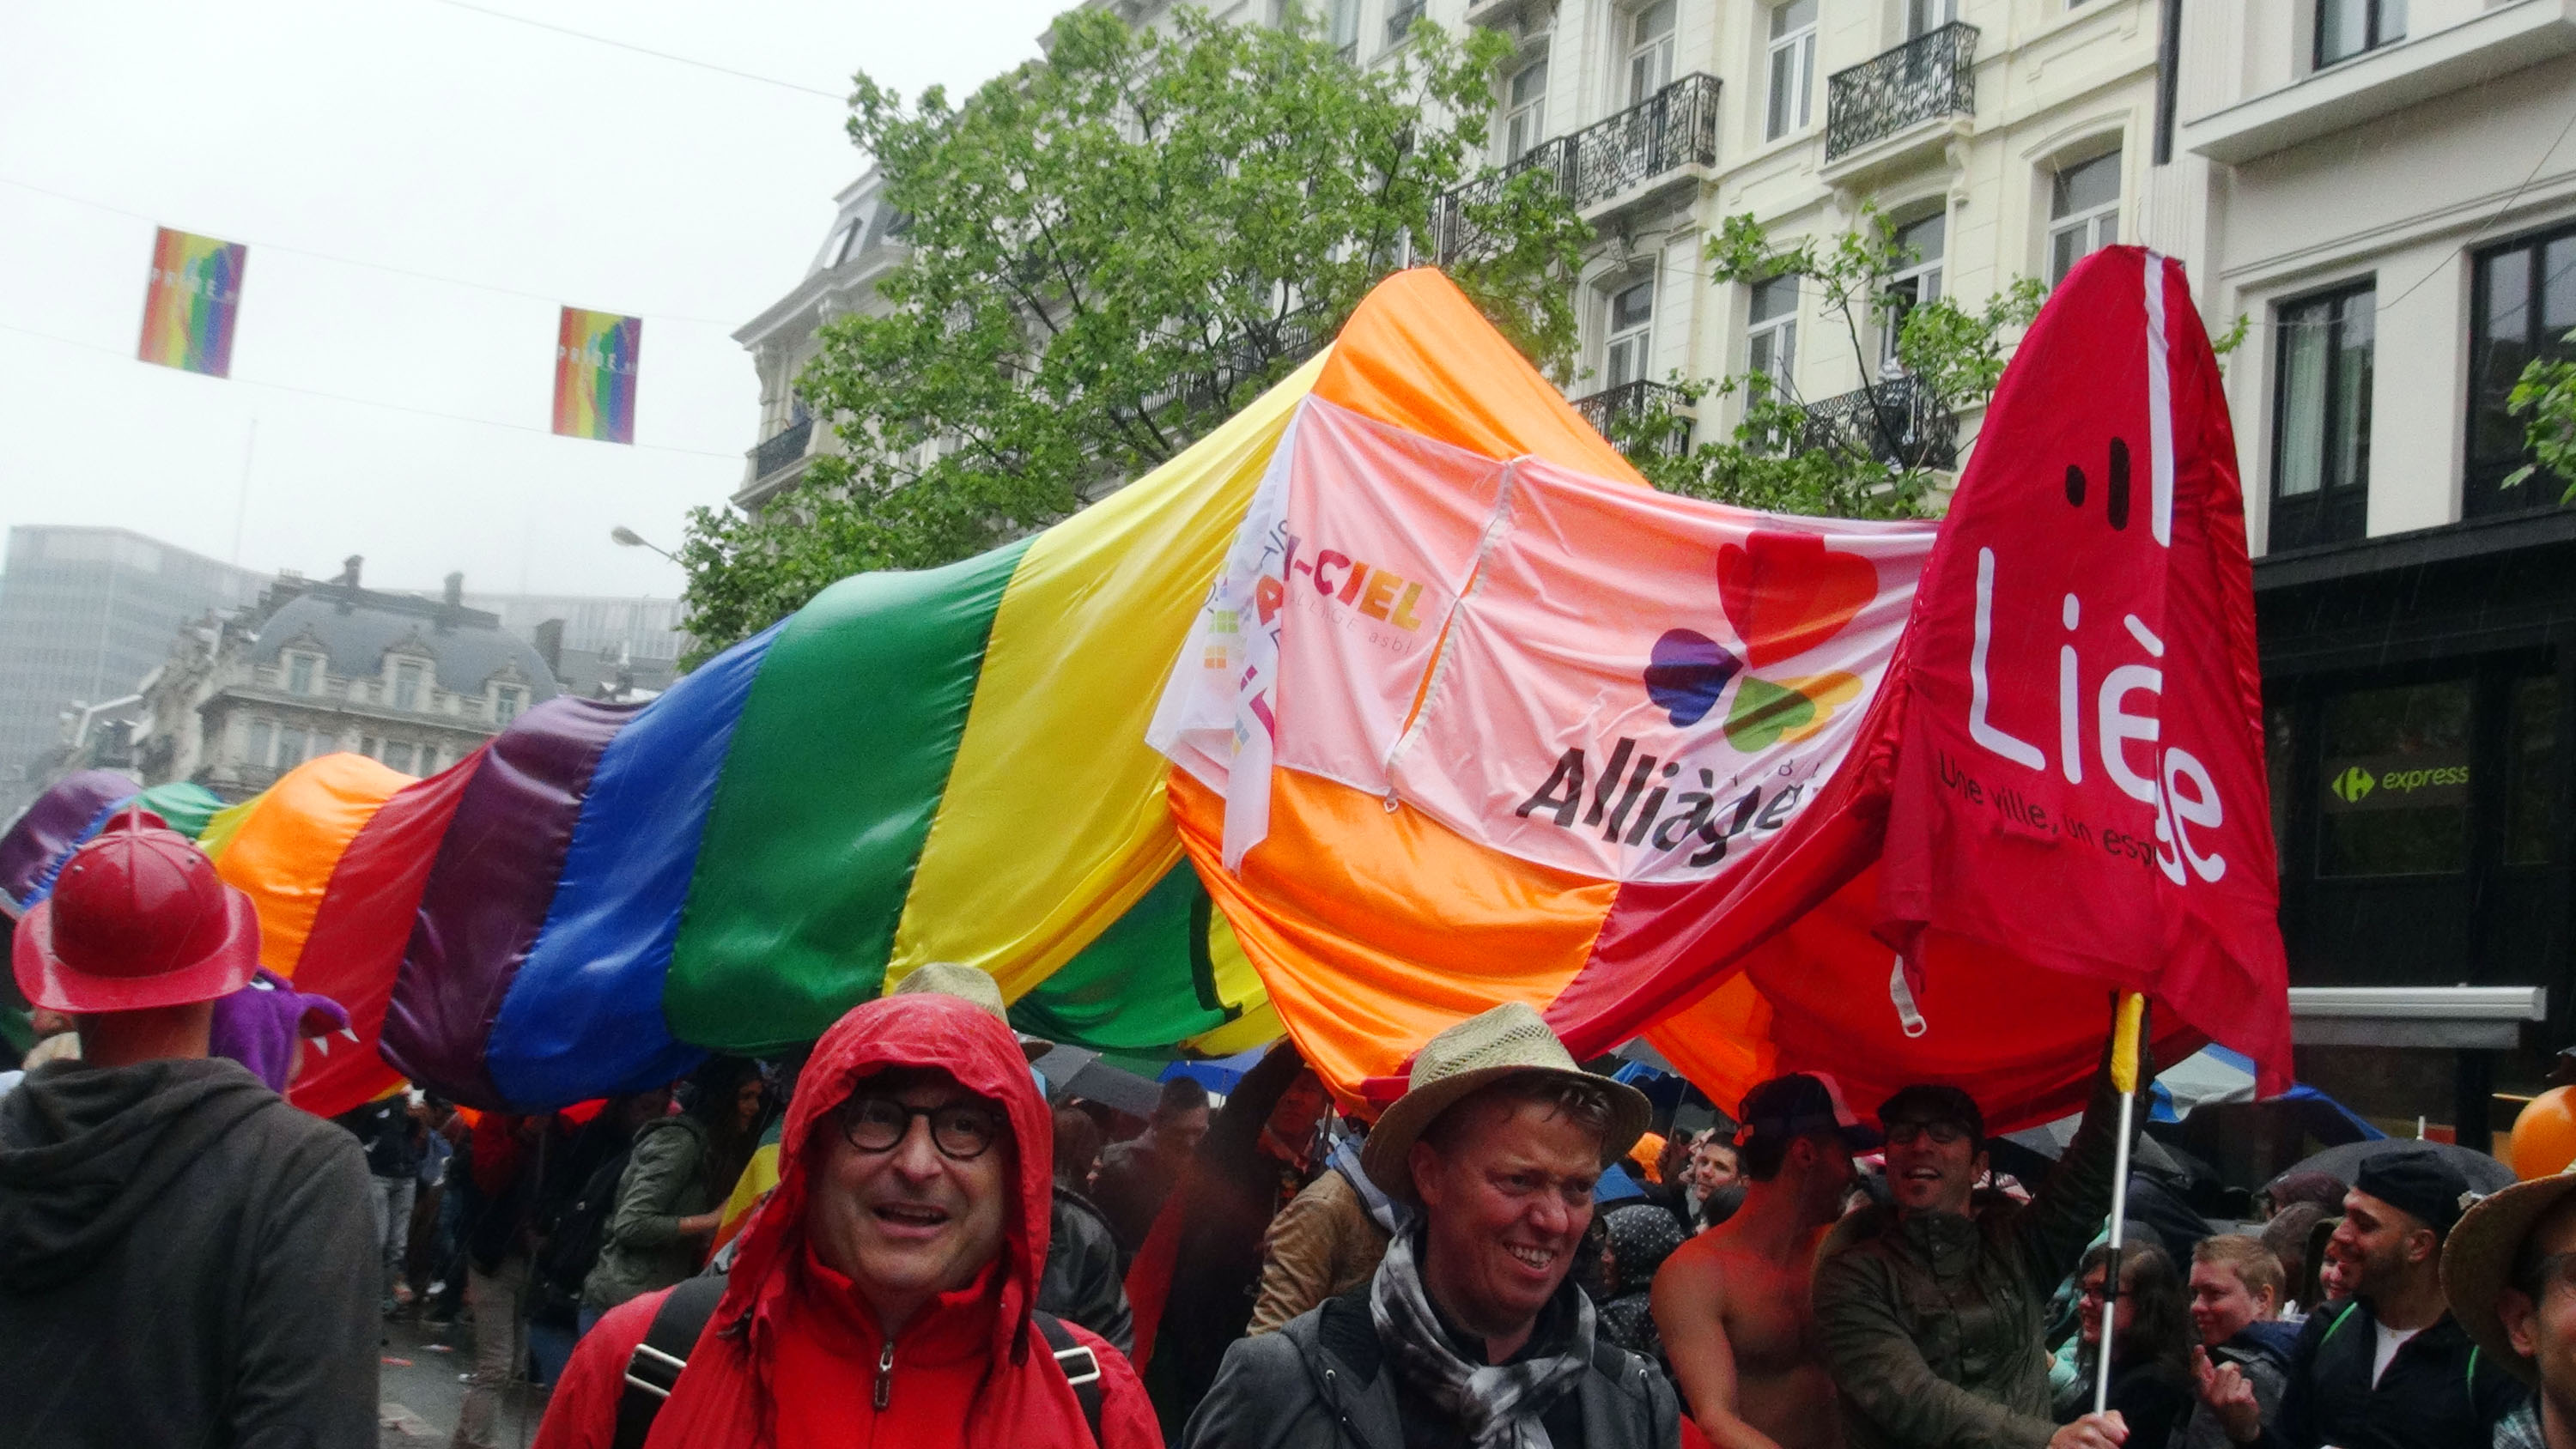 International Day Against Homophobia and Transphobia 2015: A slow progress of LGBT rights